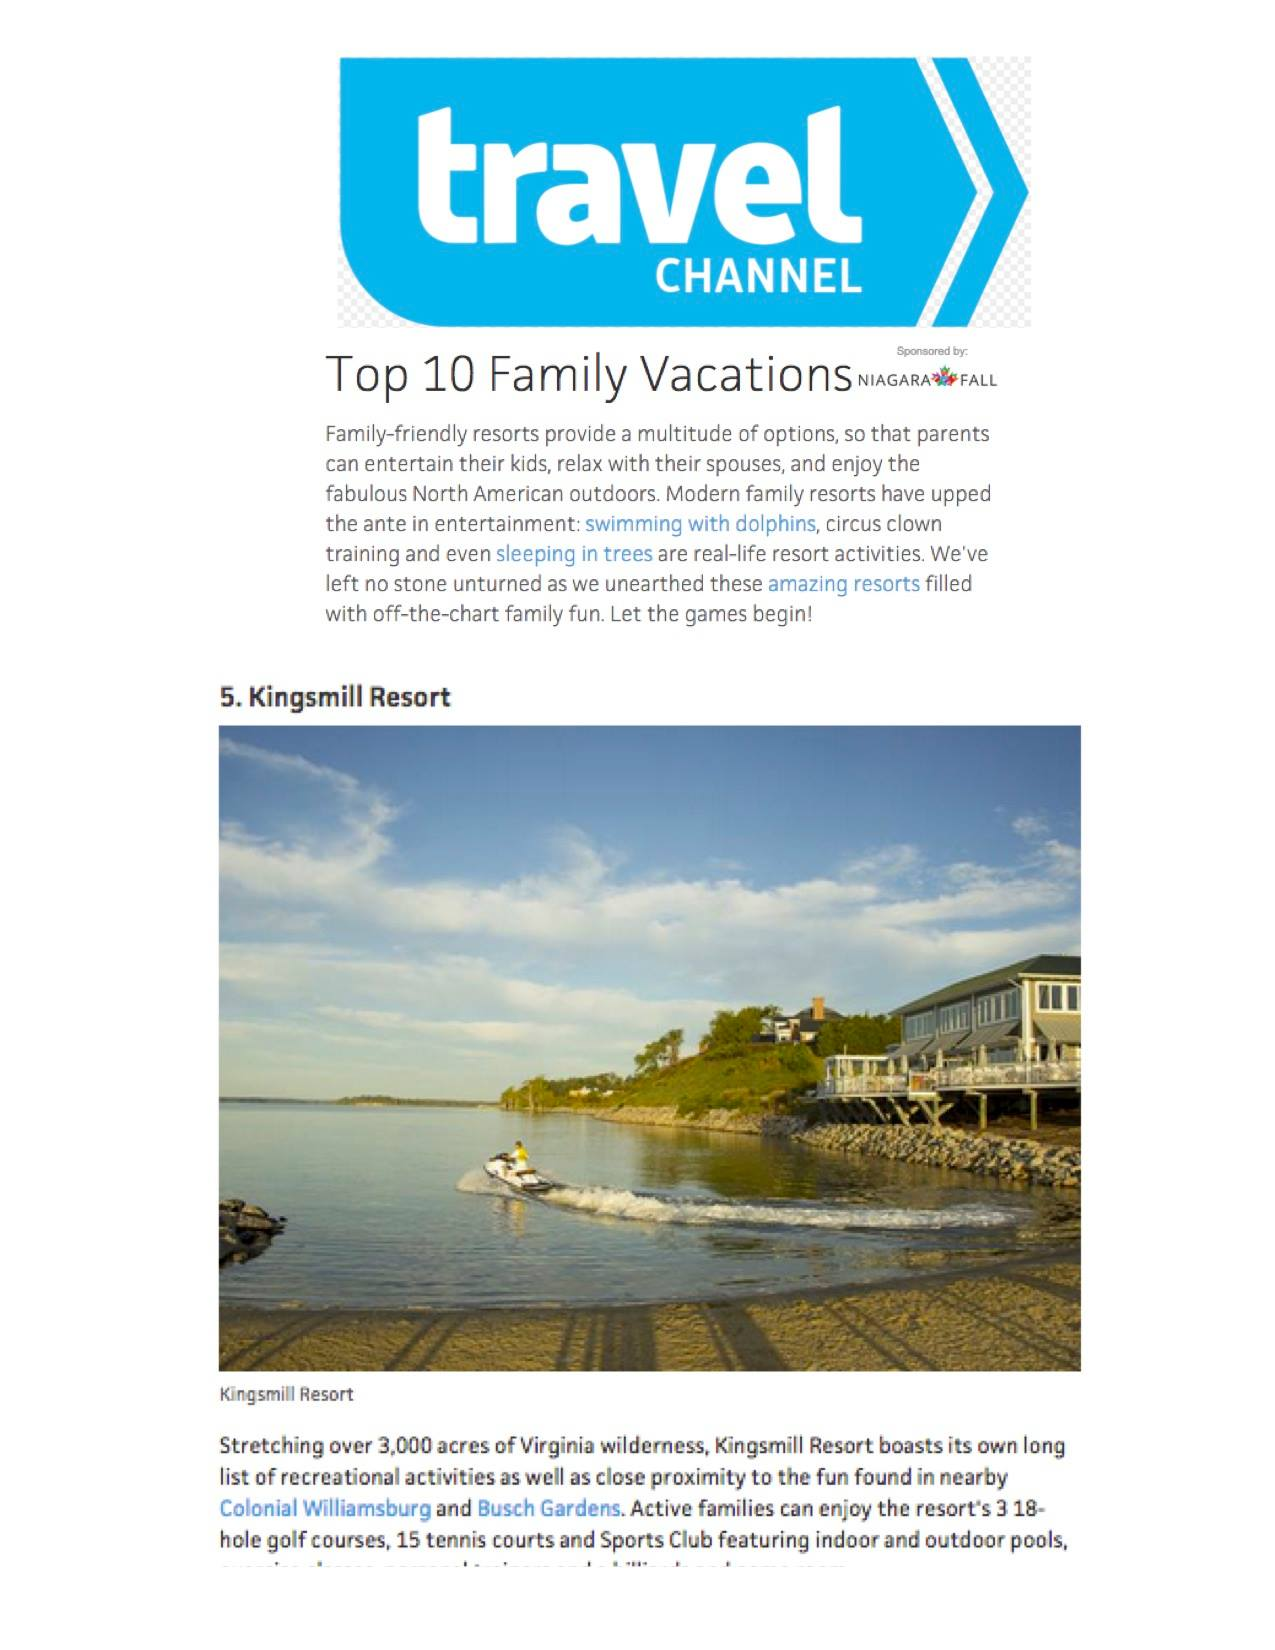 6.Kingsmill Resort in Travel Channel Family Vacation Round up.jpg